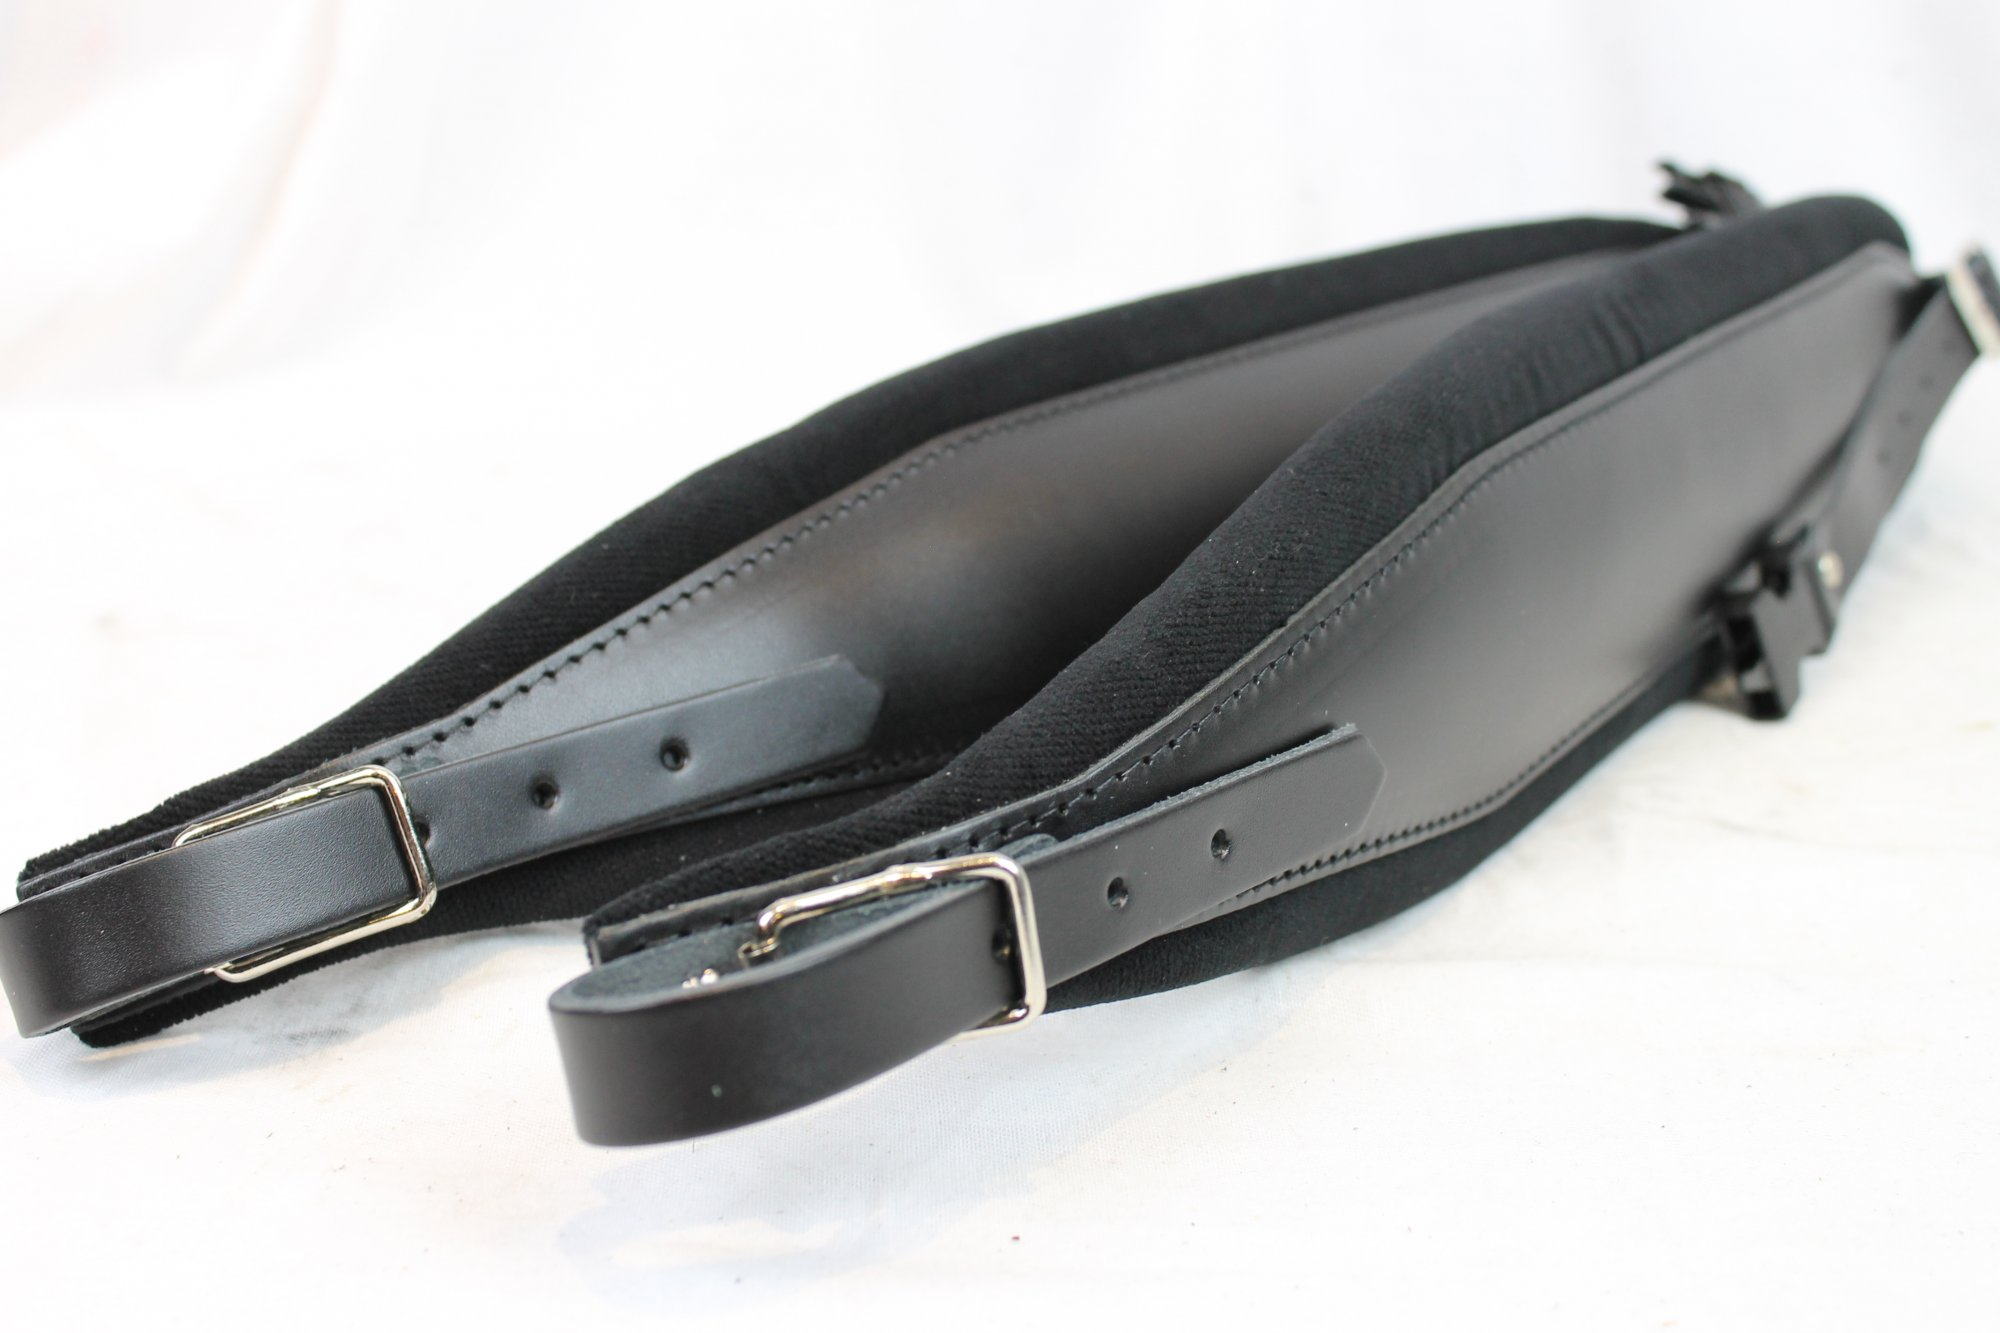 New Black Leather Velour Fuselli Accordion Shoulder Straps Width (10cm / 3.9in) Length (105~123cm / 41.3~48.4in)